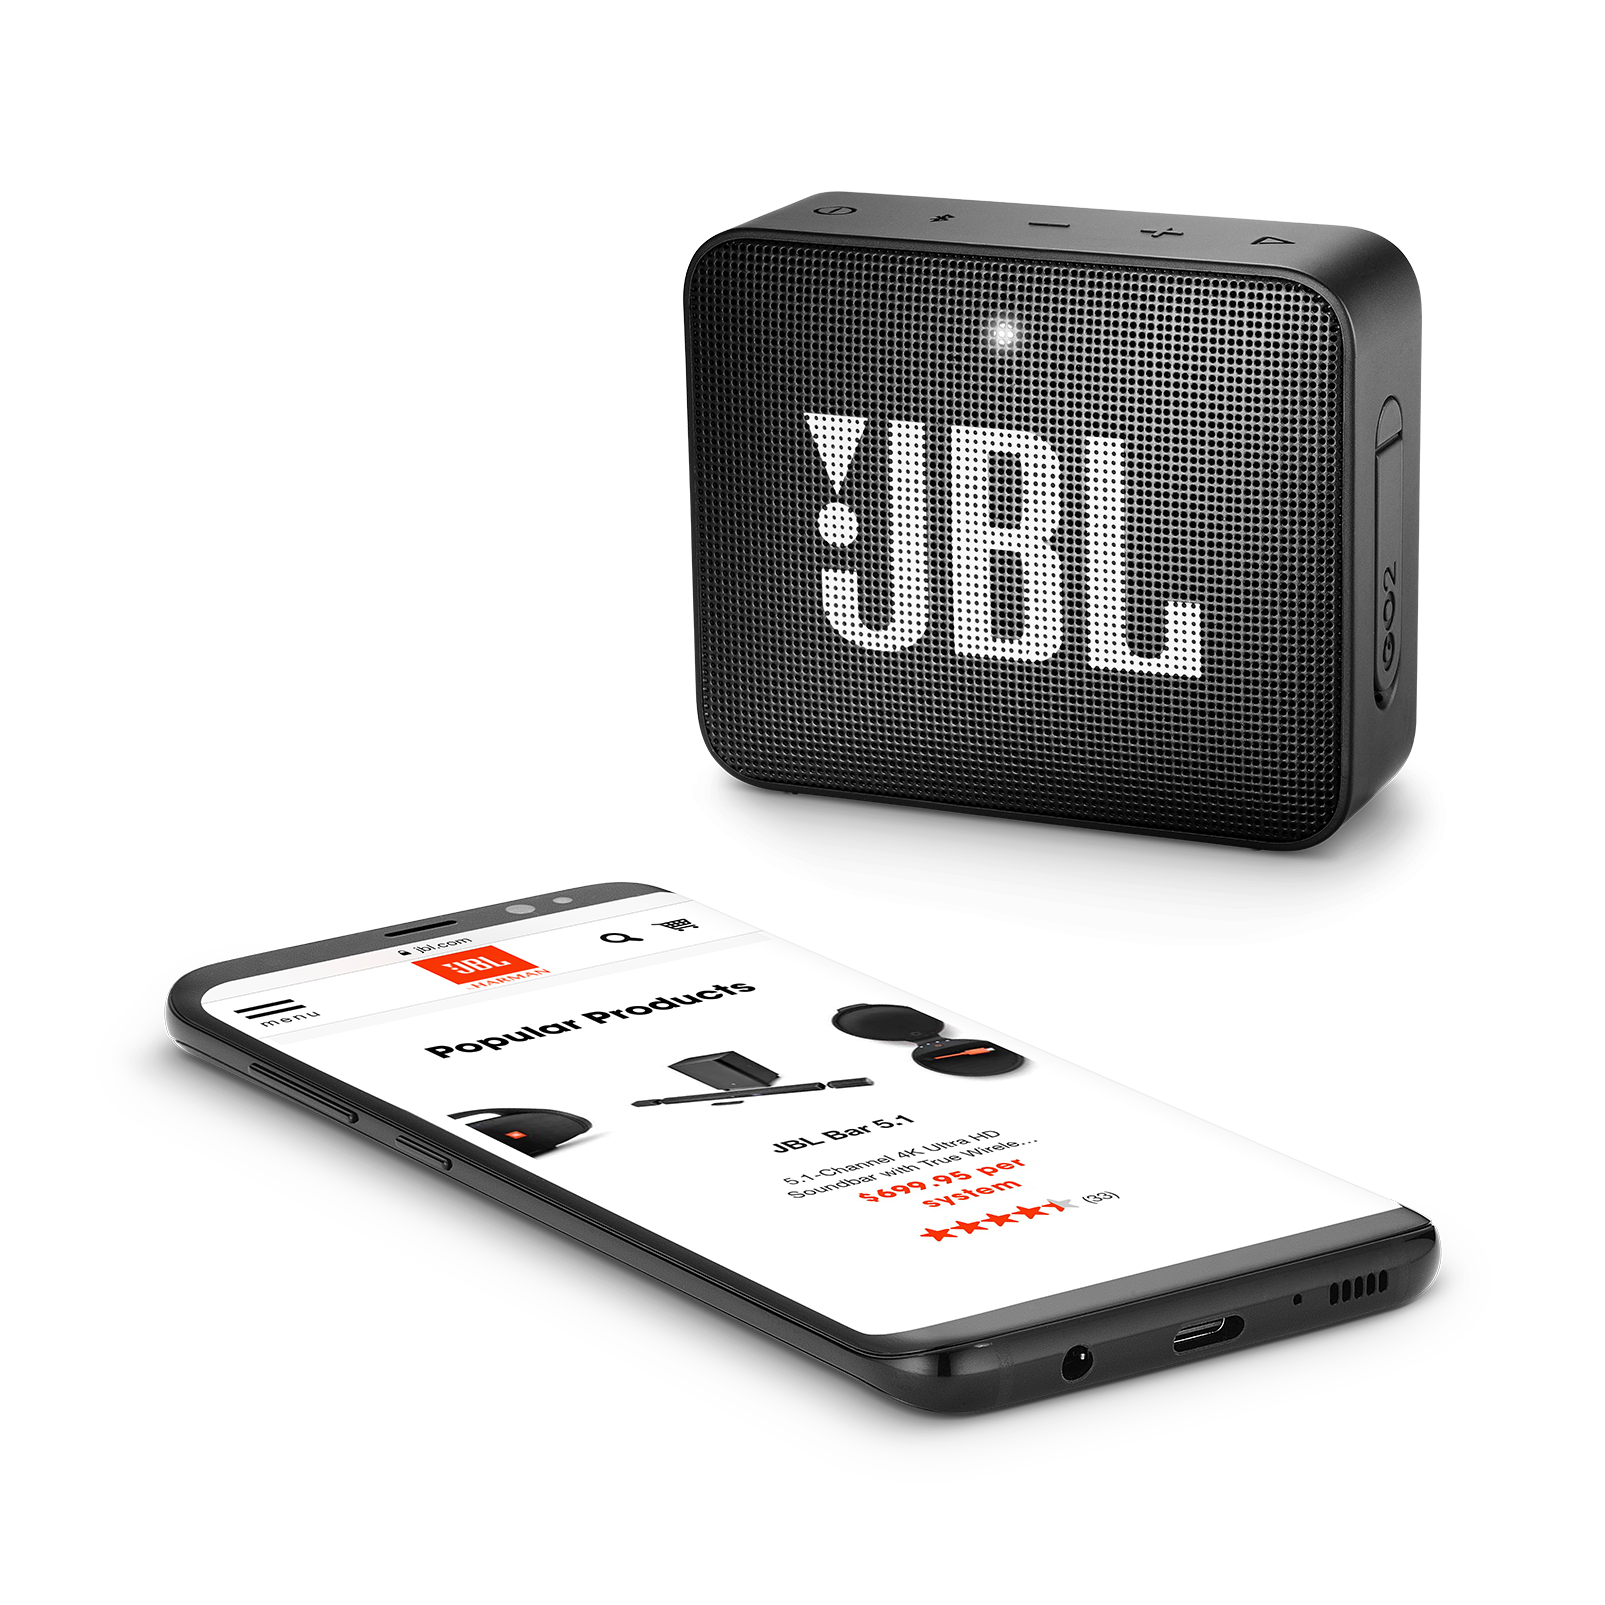 Jbl Go 2 Portable Bluetooth Speaker Samsung Headphone Cable Wiring Diagram